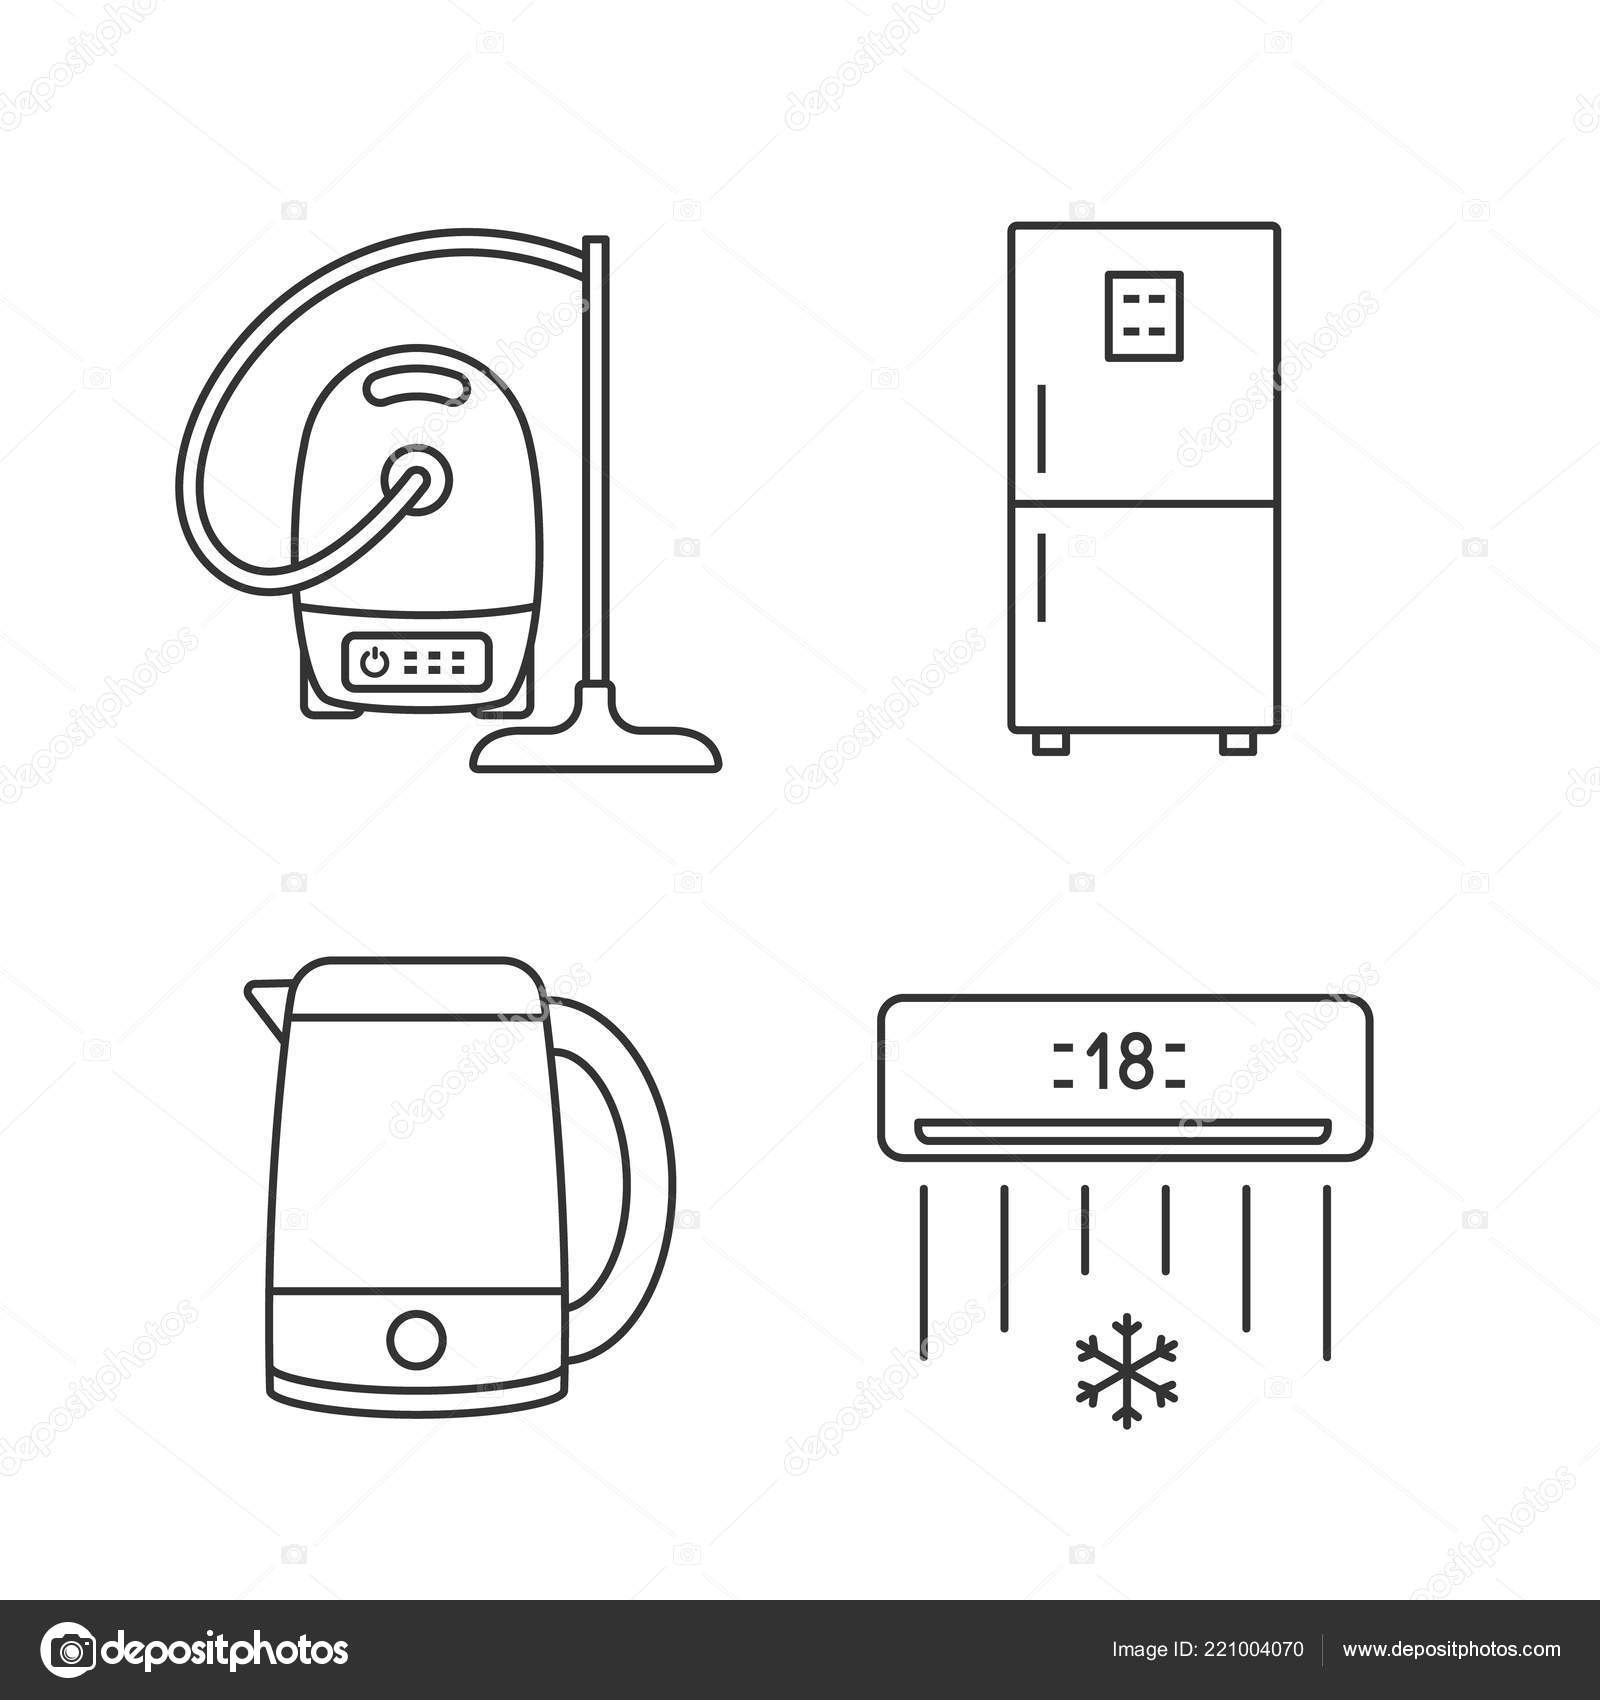 Diagram Of Electric Air Conditioner Cleaning Wiring Libraries Vacuum Cleaner Diagramshousehold Appliance Linear Icons Set Fridge